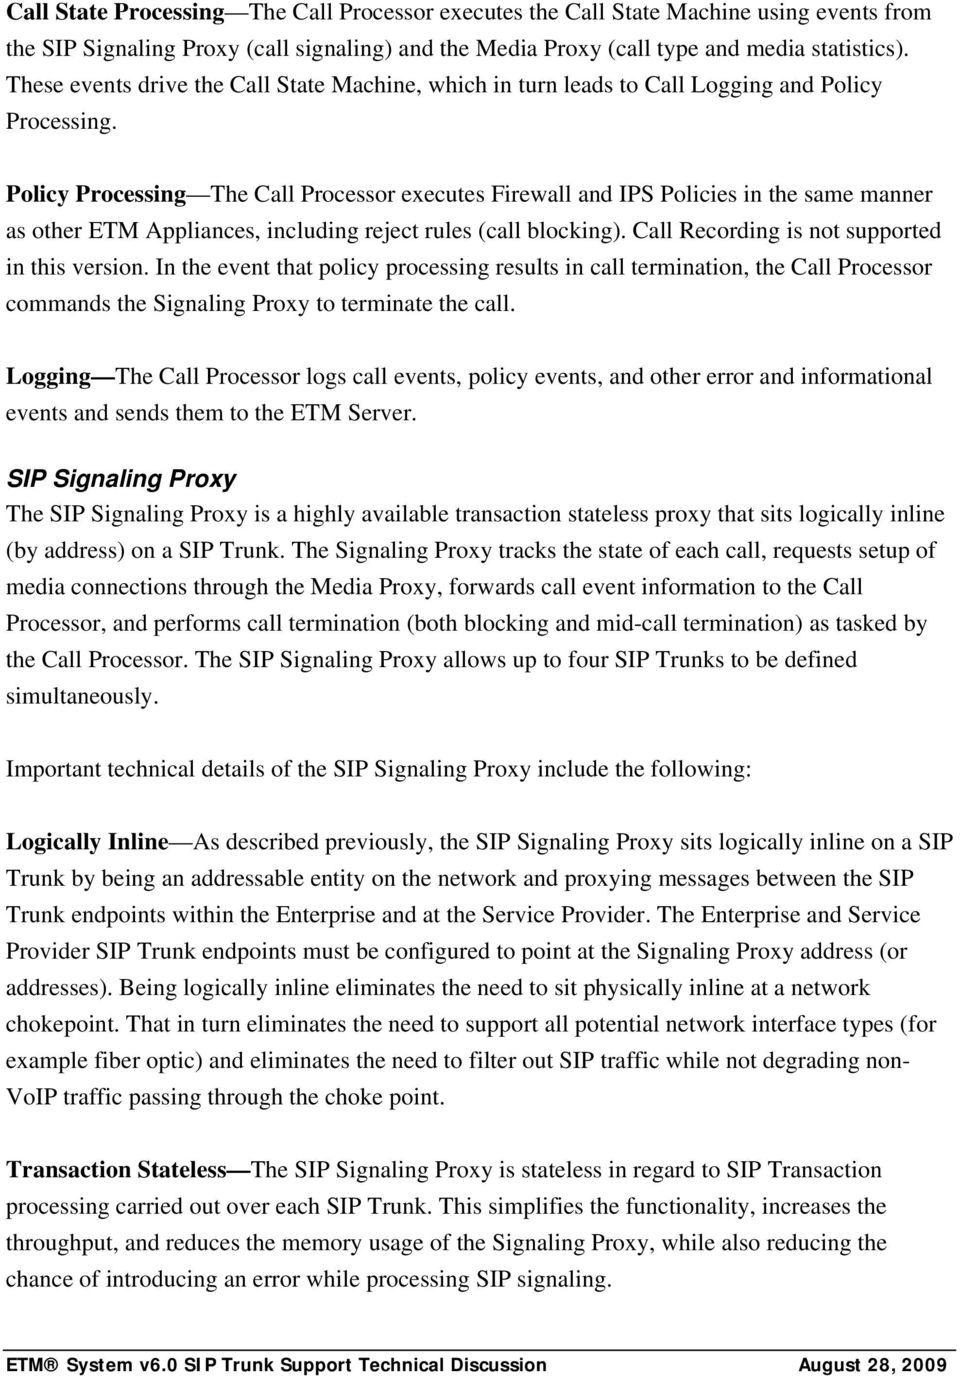 Policy Processing The Call Processor executes Firewall and IPS Policies in the same manner as other ETM Appliances, including reject rules (call blocking).